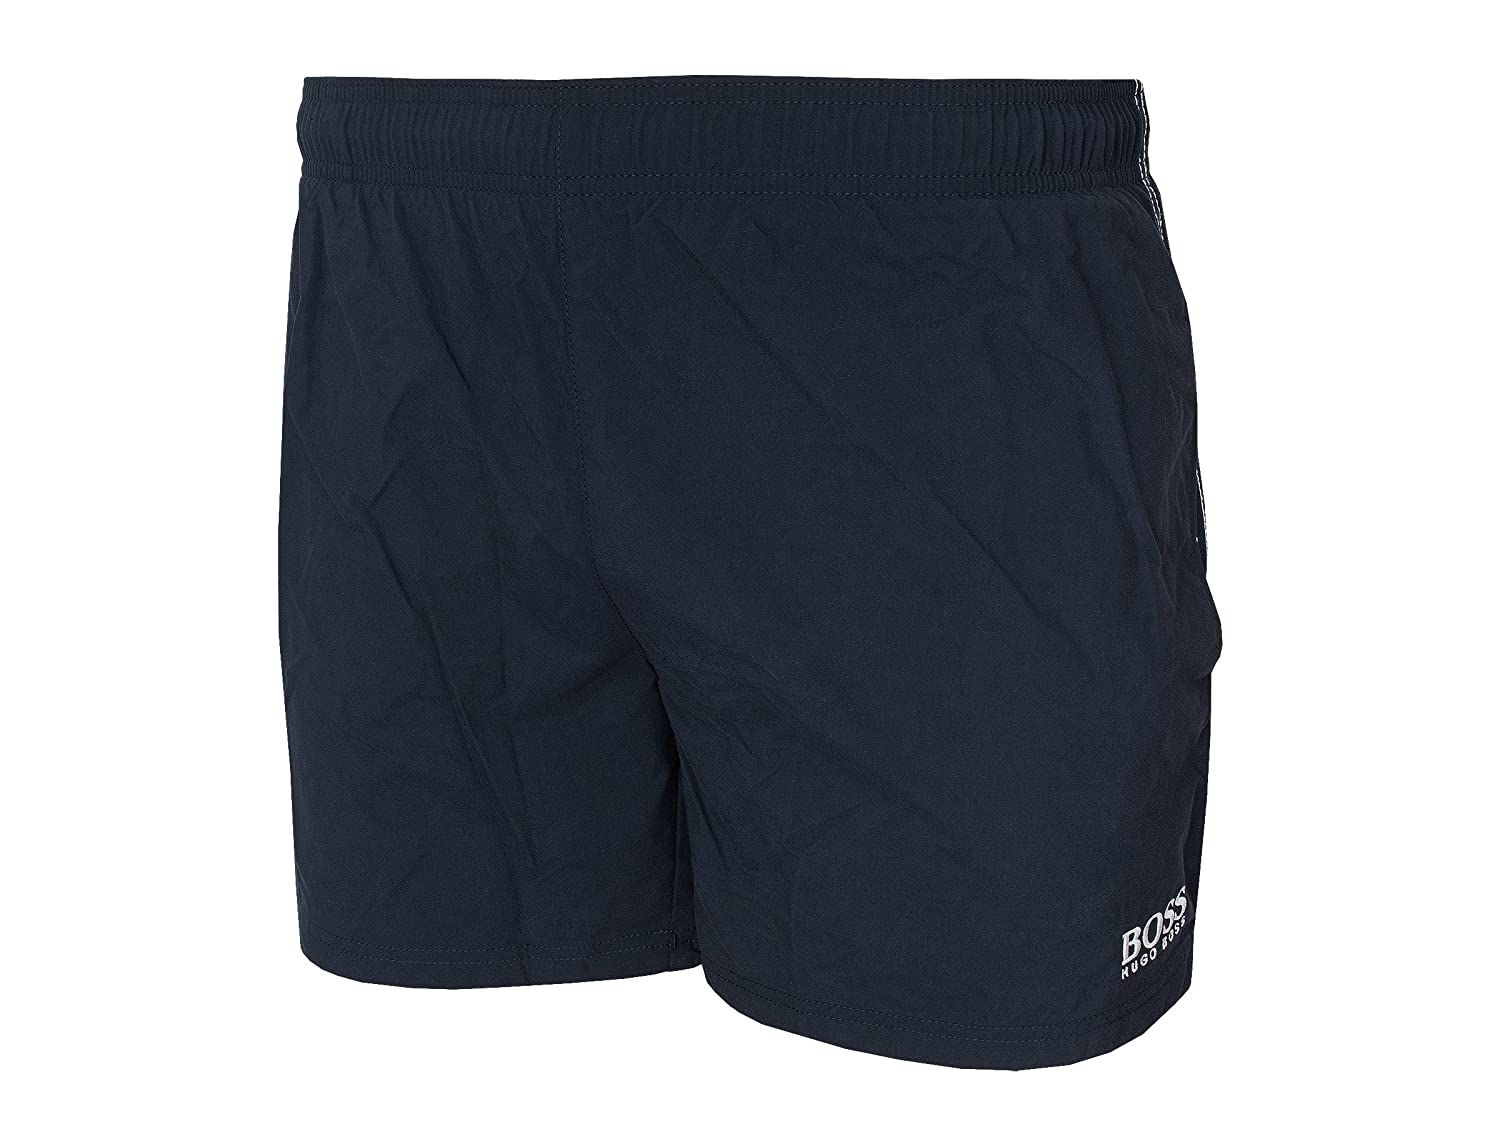 BOSS Herren Shorts Perch 50385416